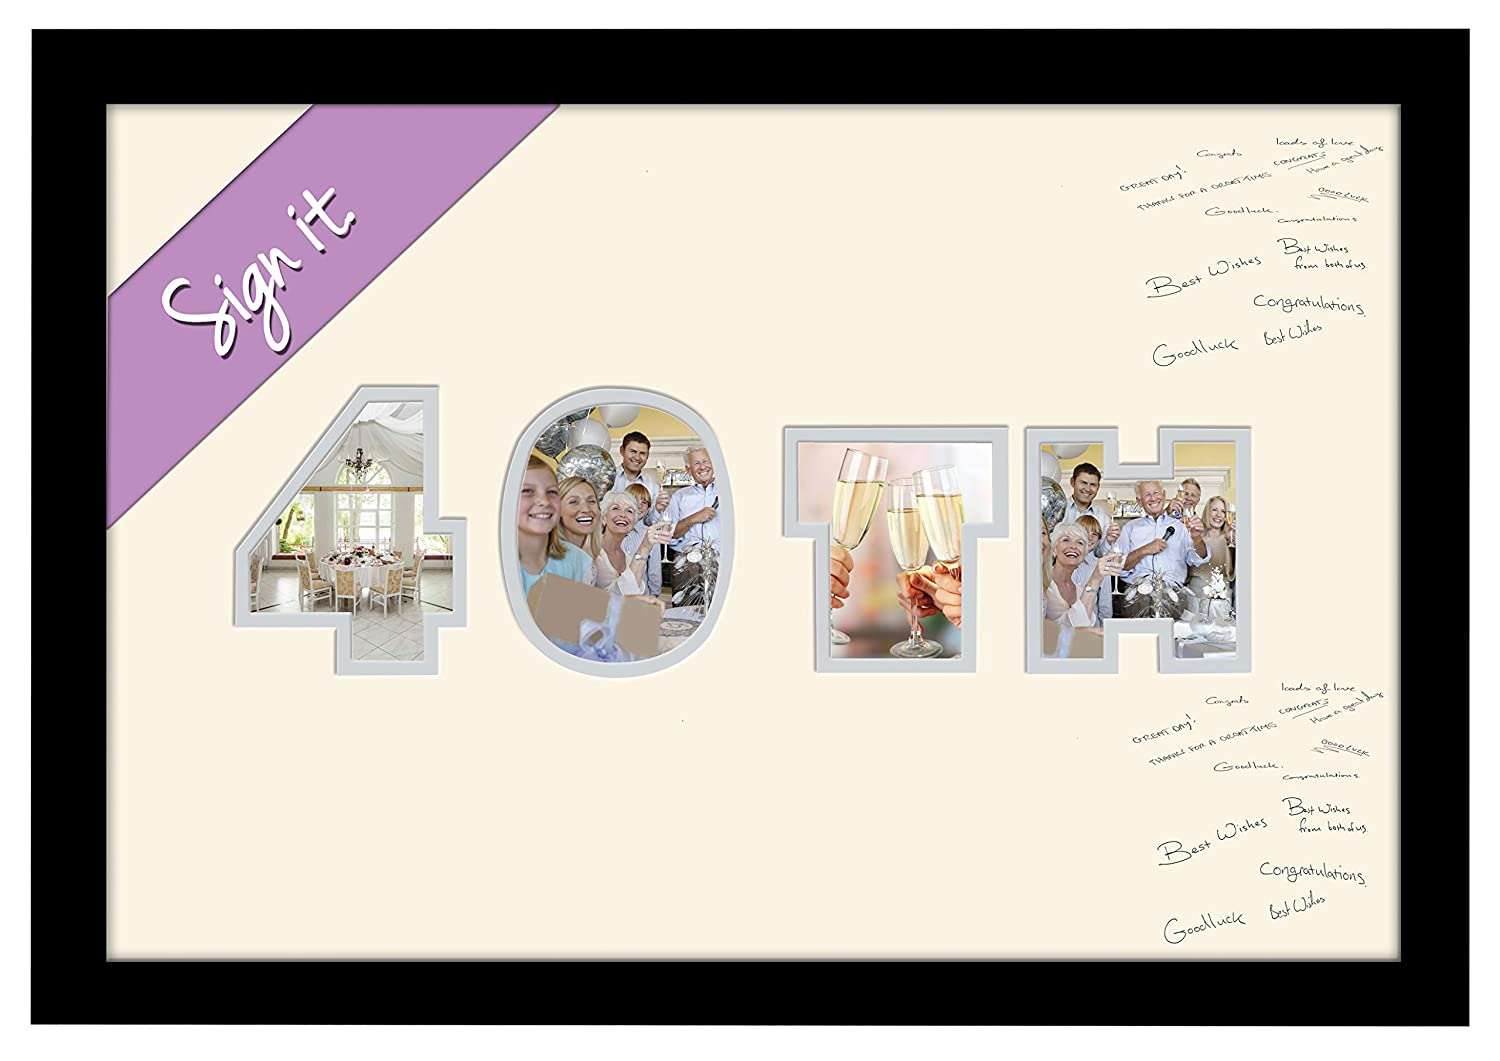 40th Birthday Ruby Wedding Anniversary Personalised Guest Book Signing Signature Autograph Photo Frame to Sign Gift Present (Black Finish Frame) Photos in a Word